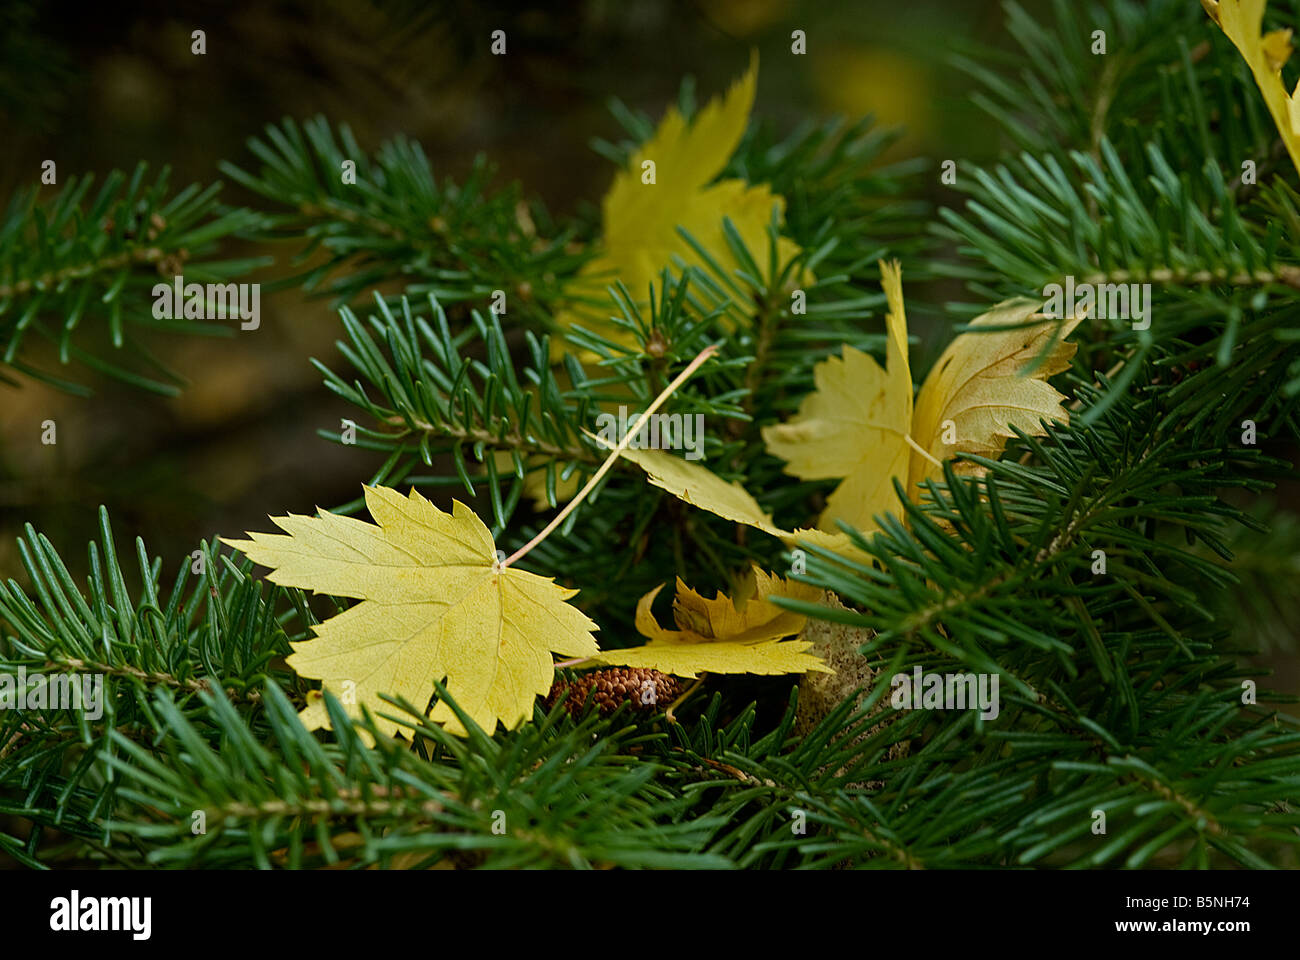 yellow maple leaves have fallen off the tree and landed on a bed of short-needled pine branch - Stock Image